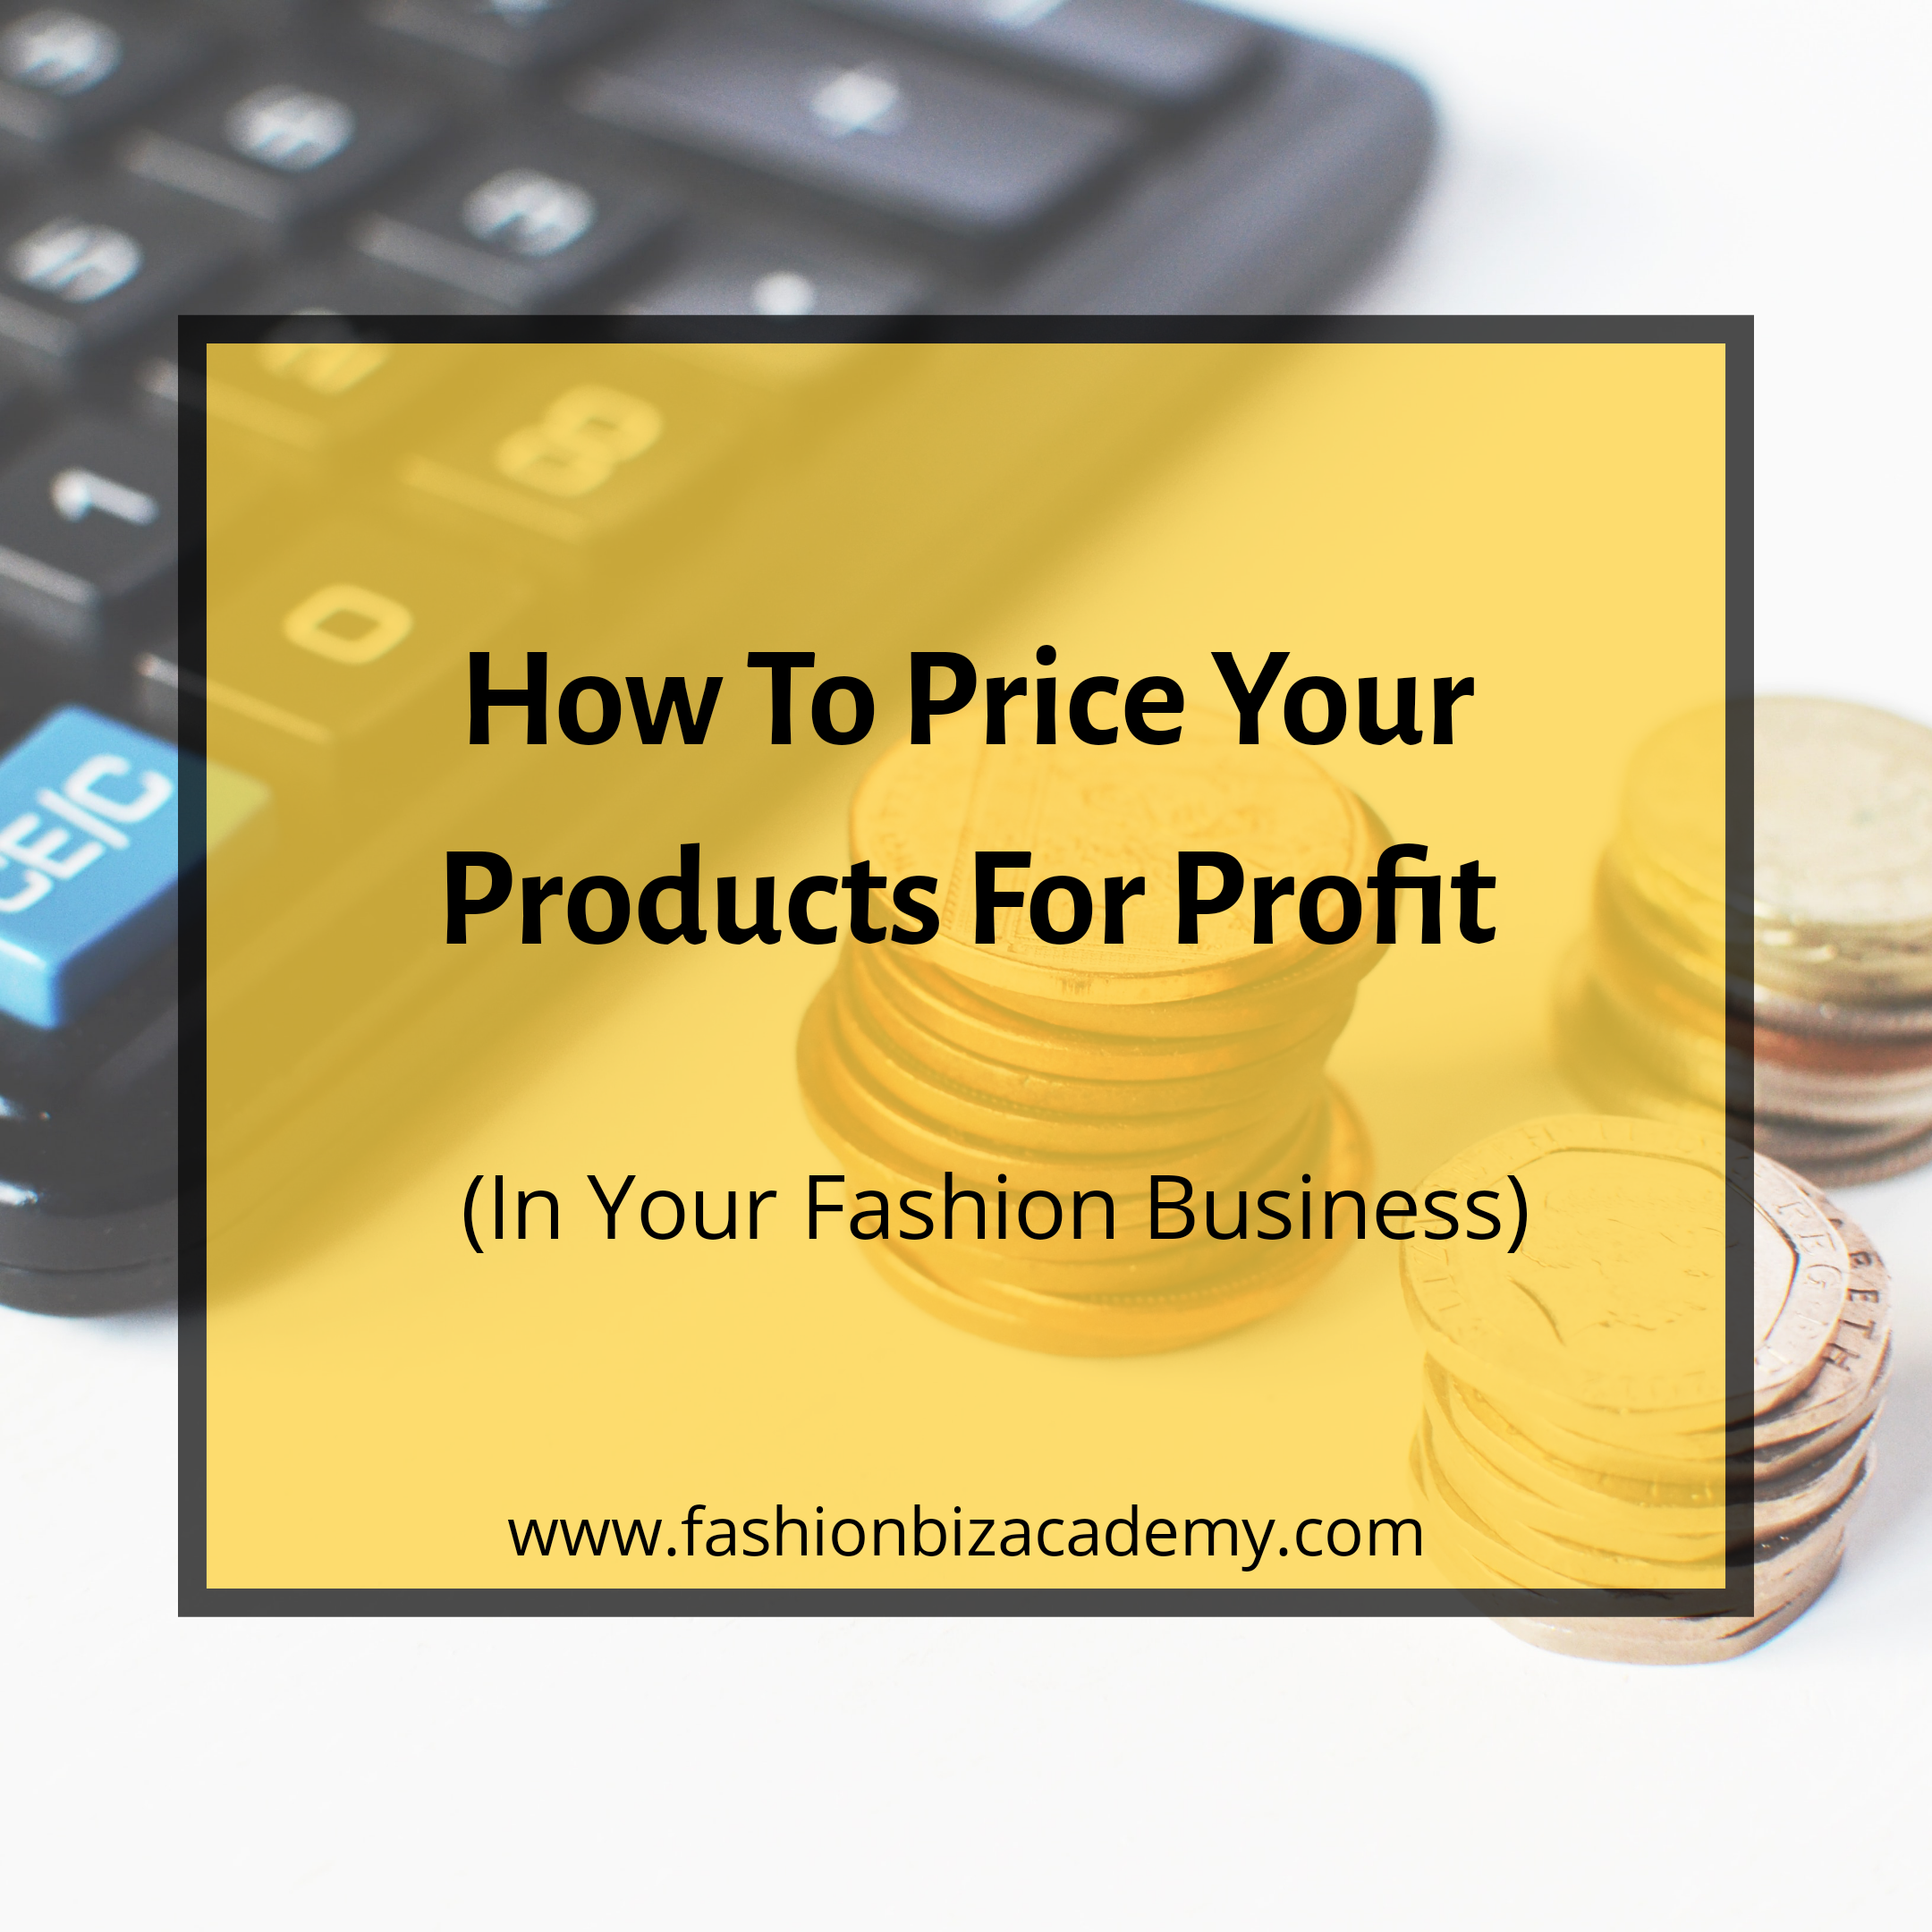 How To Price Your Products For Profit In Your Fashion Business